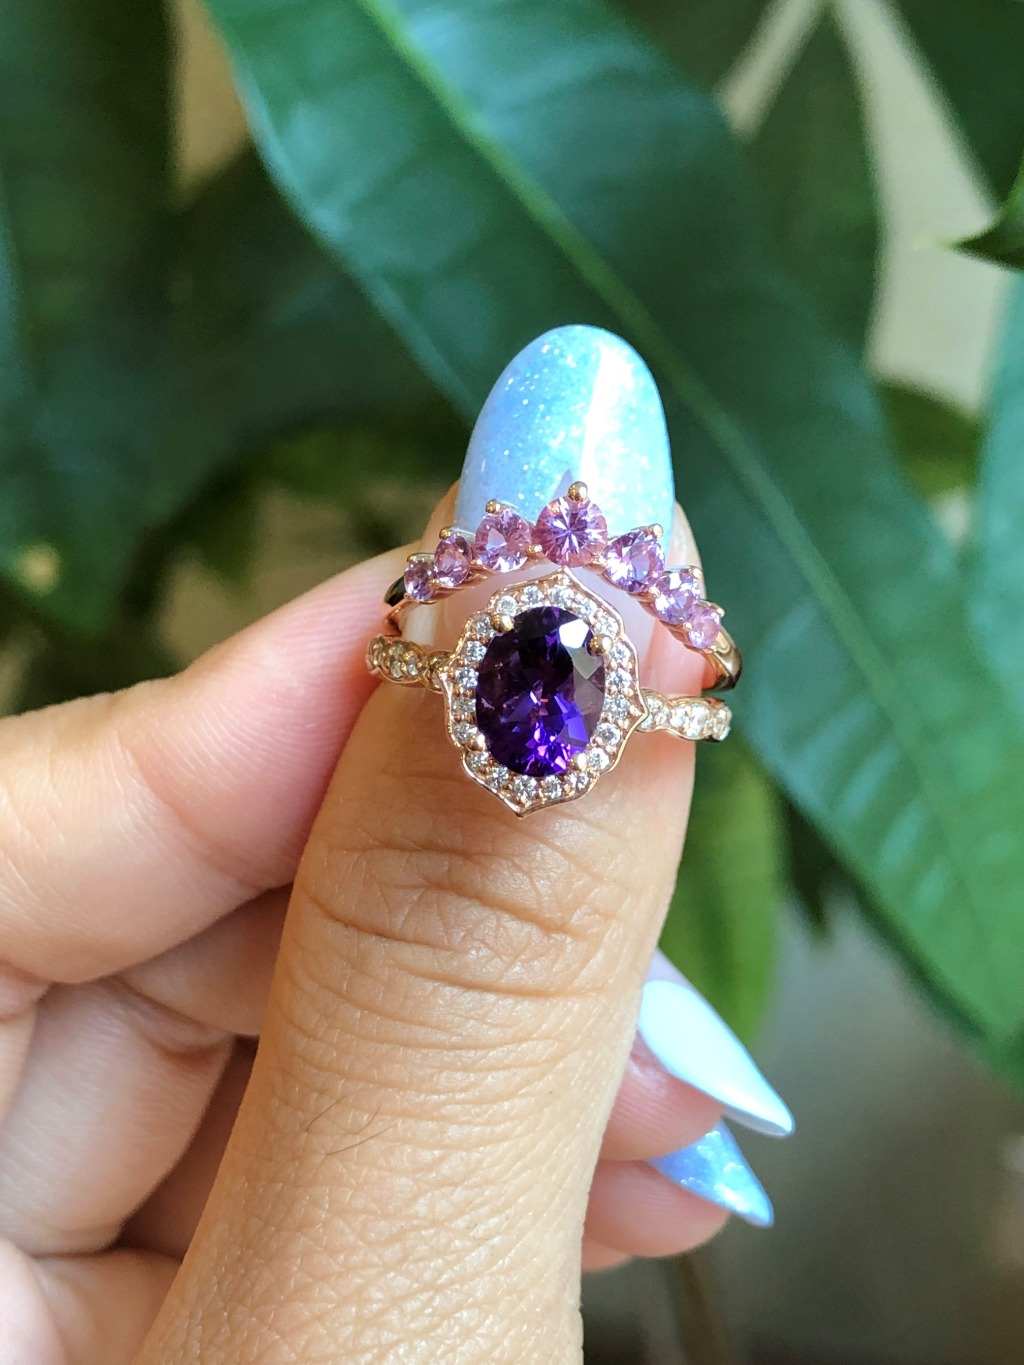 Unique yet elegant purple amethyst bridal set showcases a oval cut amethyst engagement ring in 14k rose gold floral ring setting and